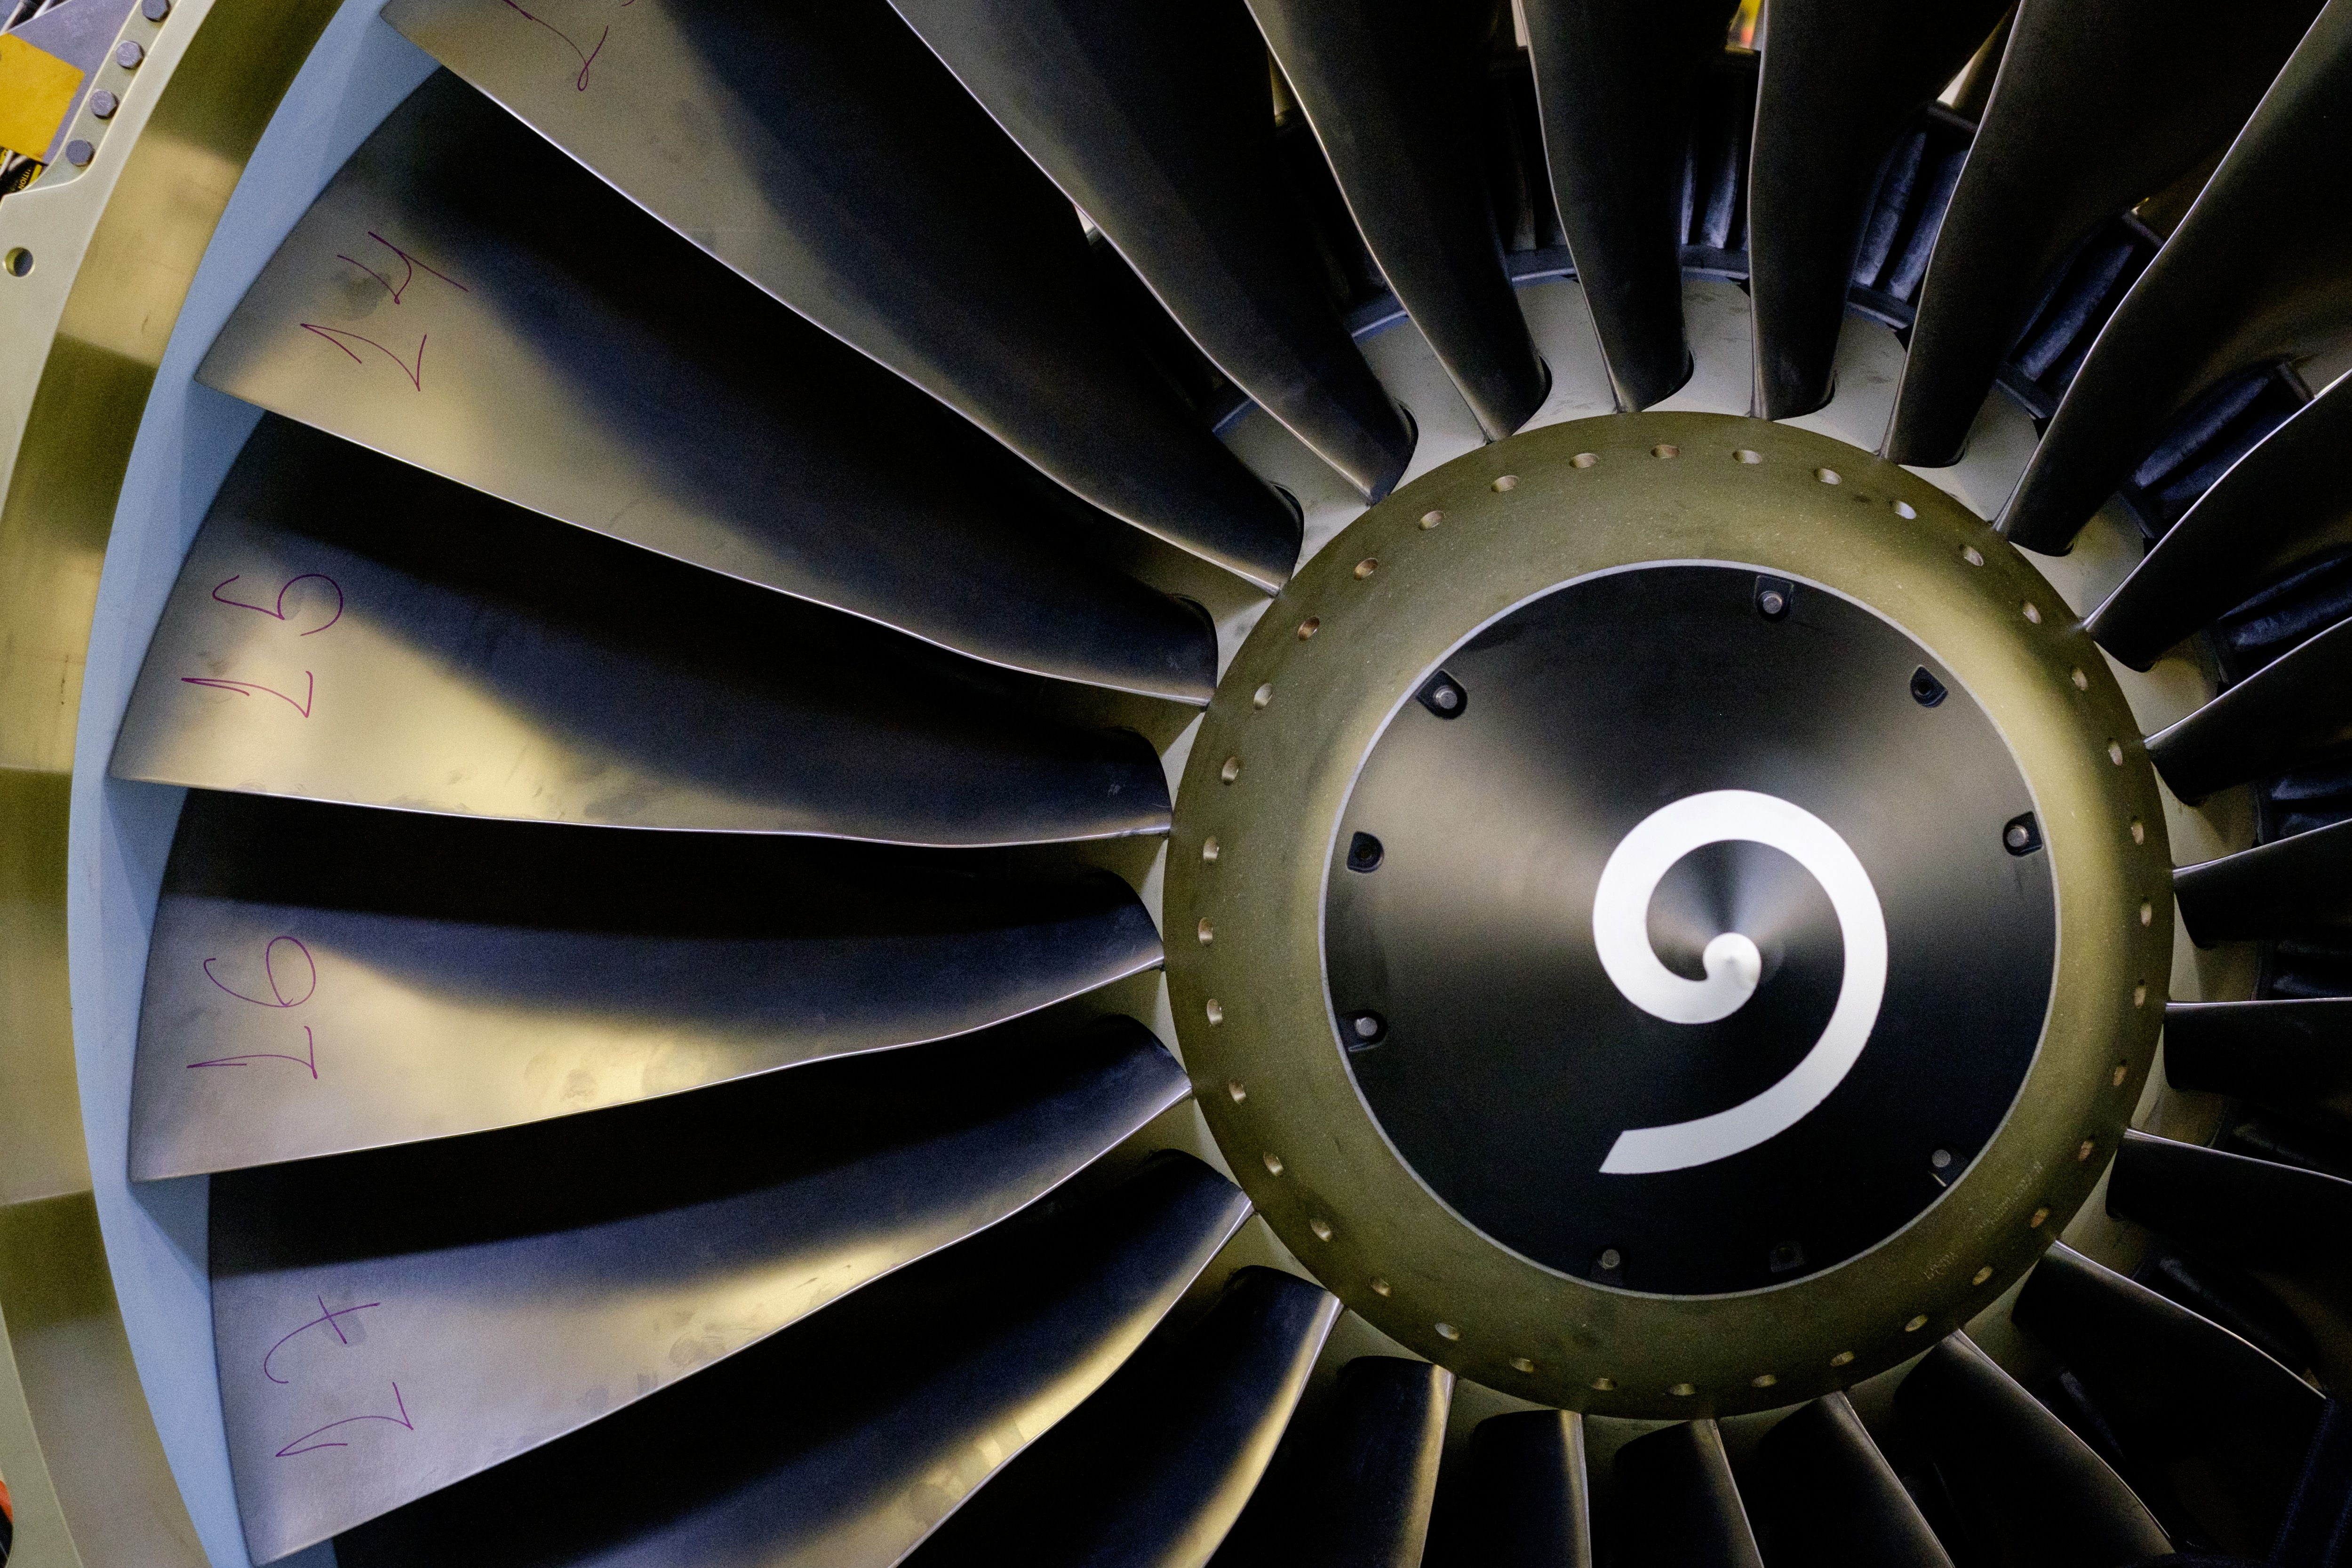 View of a jet engine at General Electric Celma, GE's aviation engine overhaul facility in Petropolis, Rio de Janeiro, Brazil on June 8, 2016.